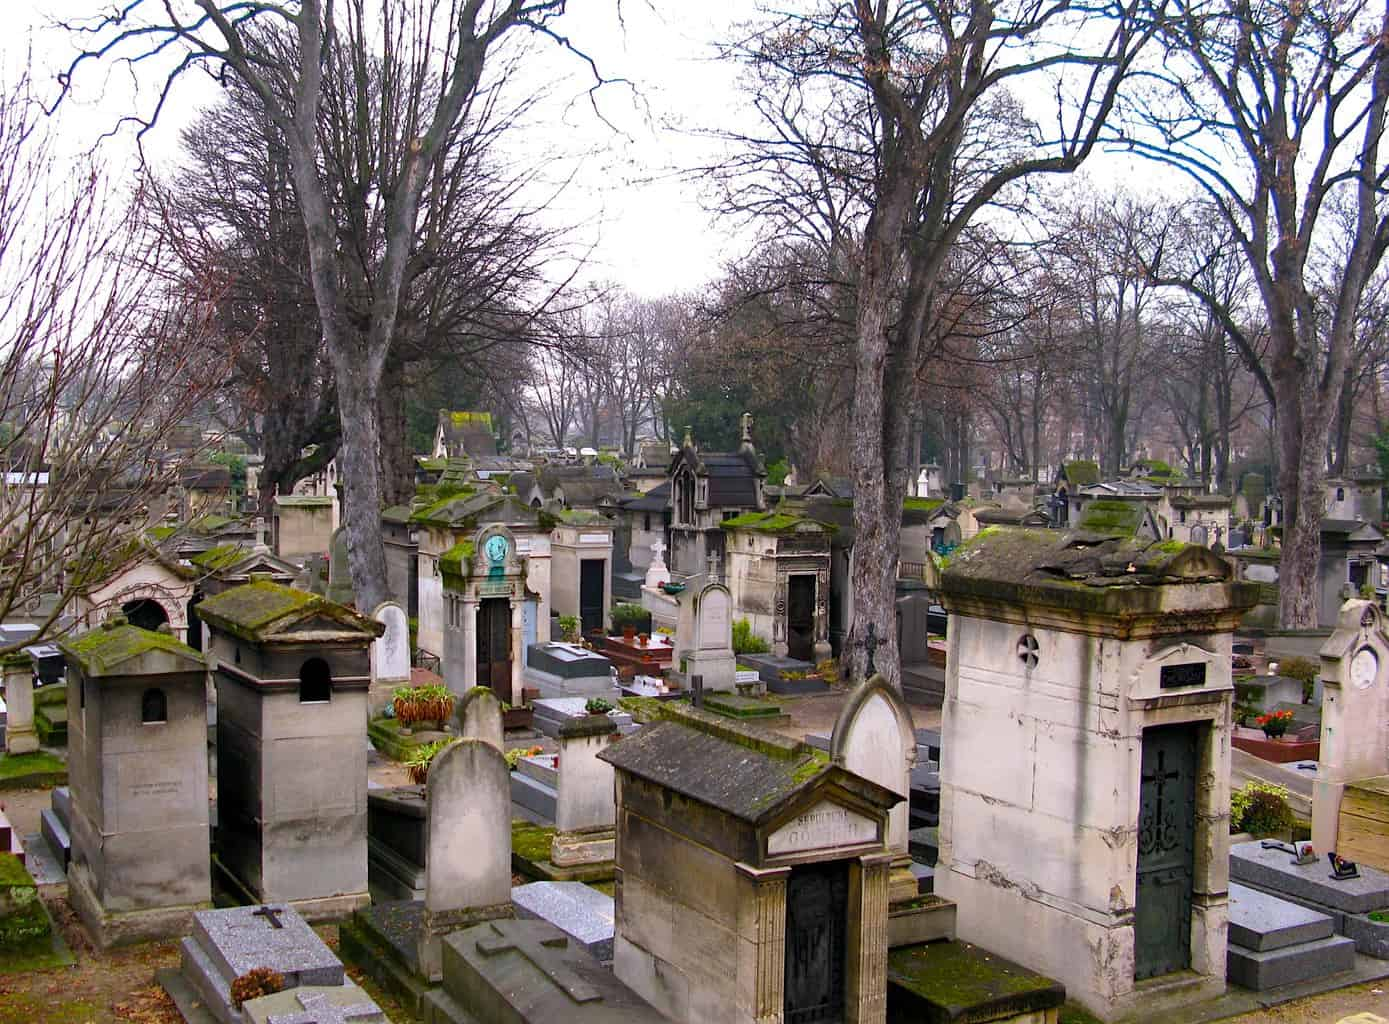 The sea of tombs that quietly stretch out before you at Montmartre Cemetery, obe of the many hidden gems in Paris.